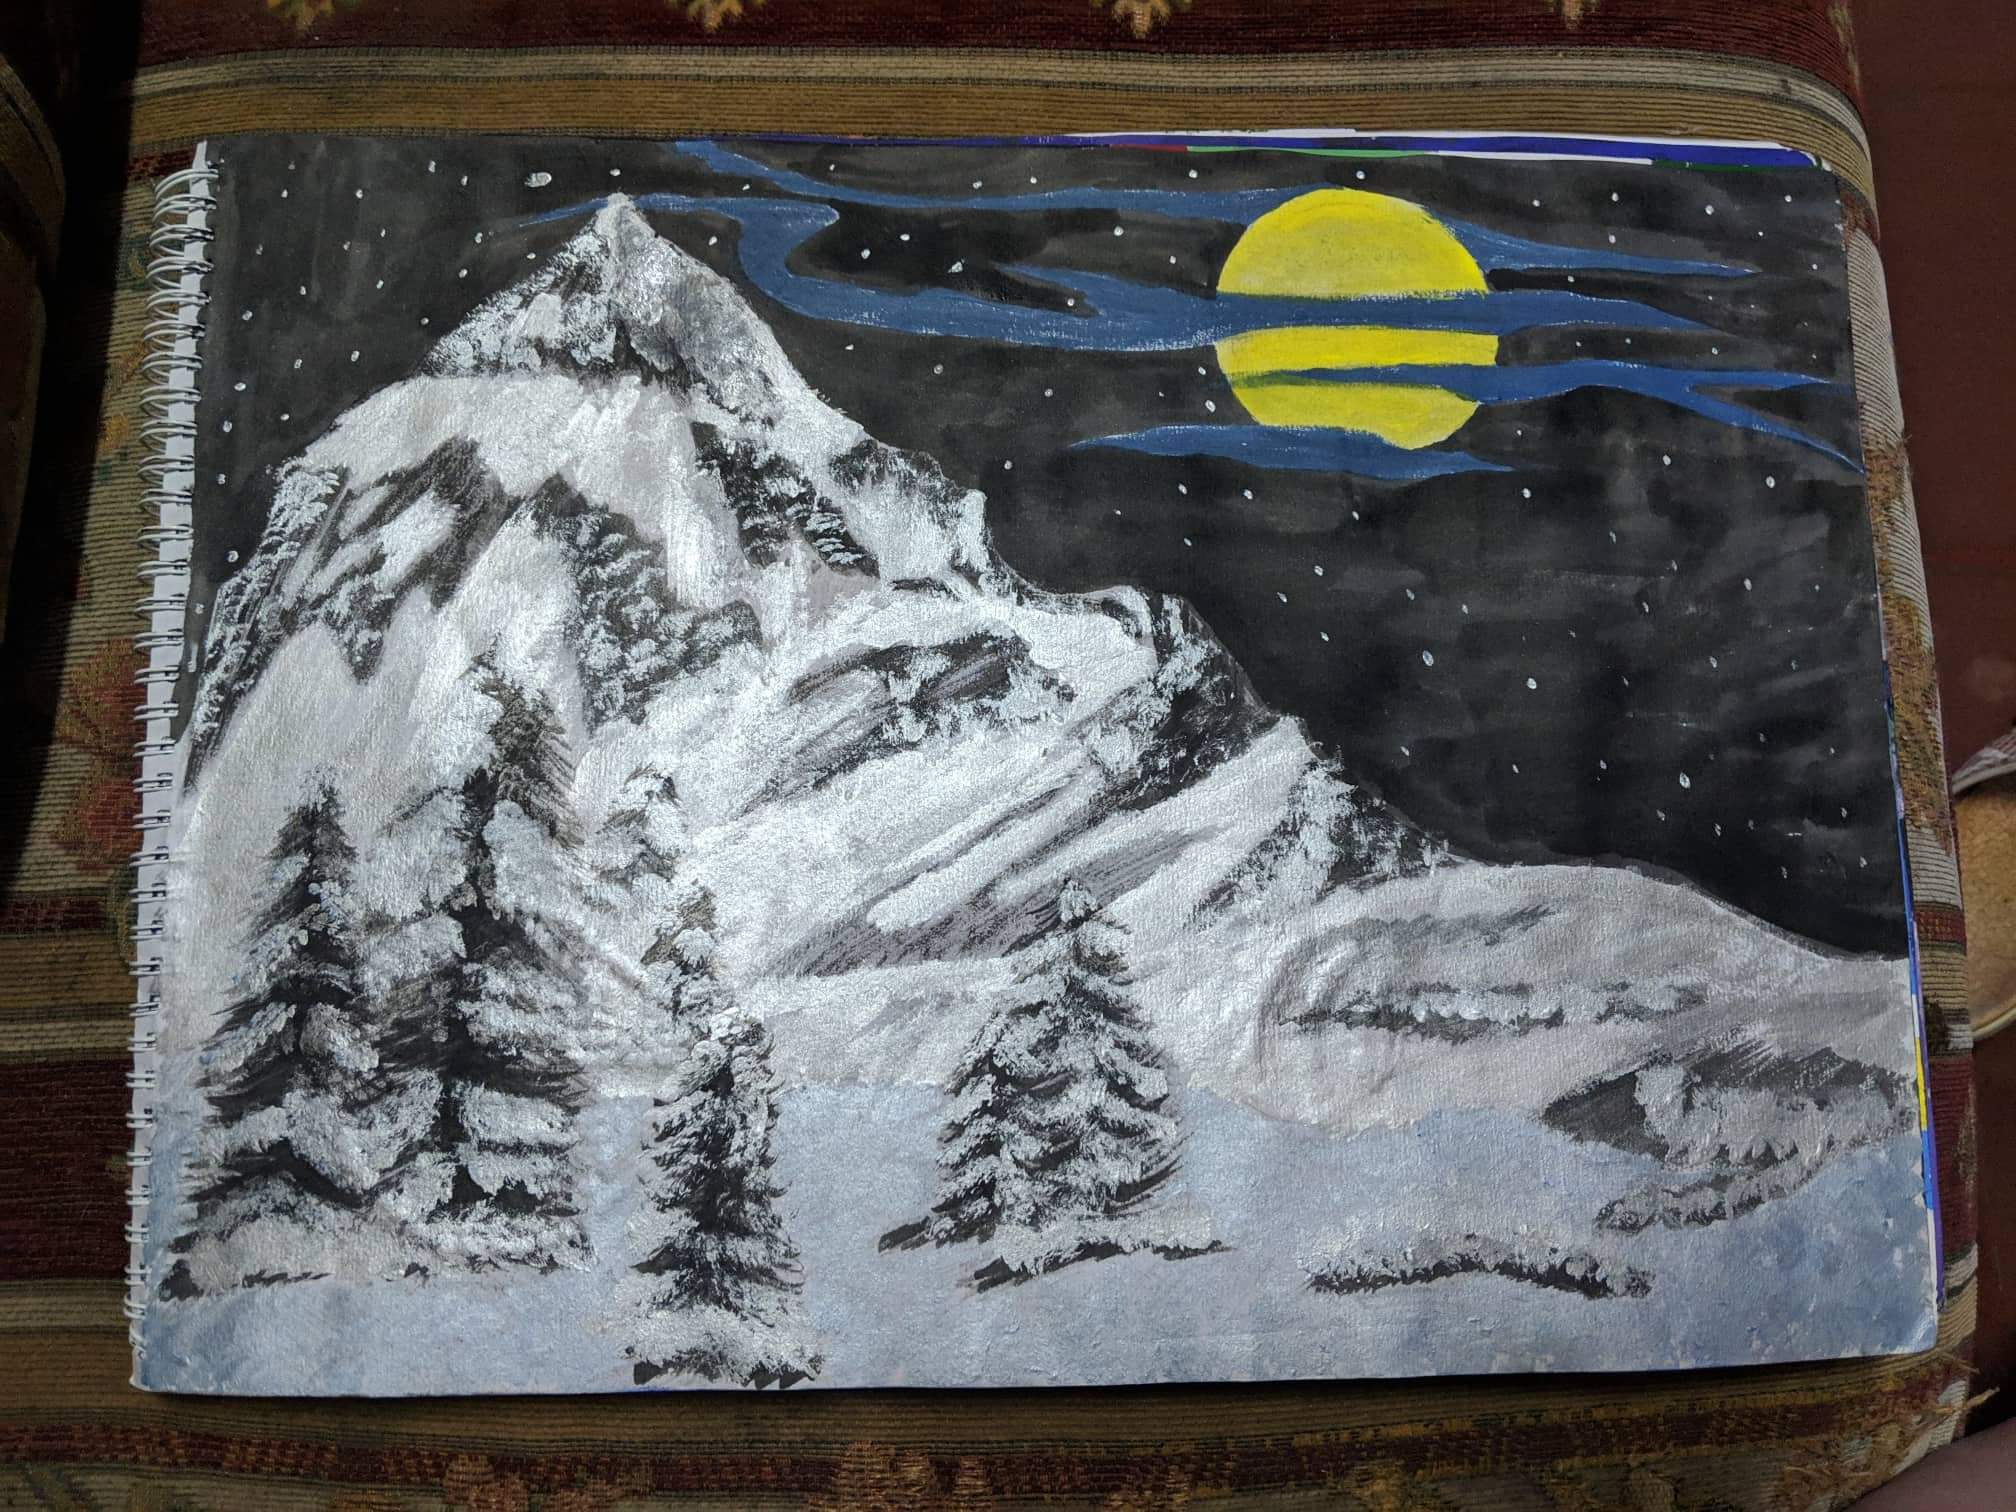 [Image] My bff painted this. What do you guys think?